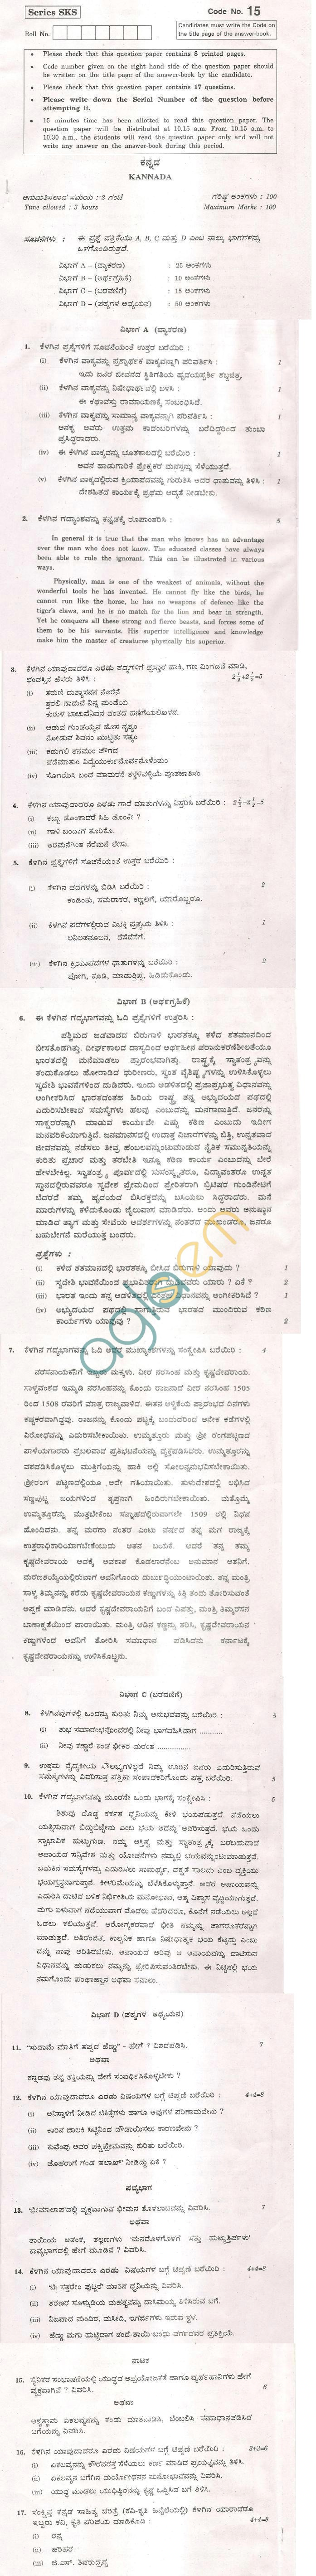 CBSE Board Exam 2013 Class XII Question Paper - Kannada